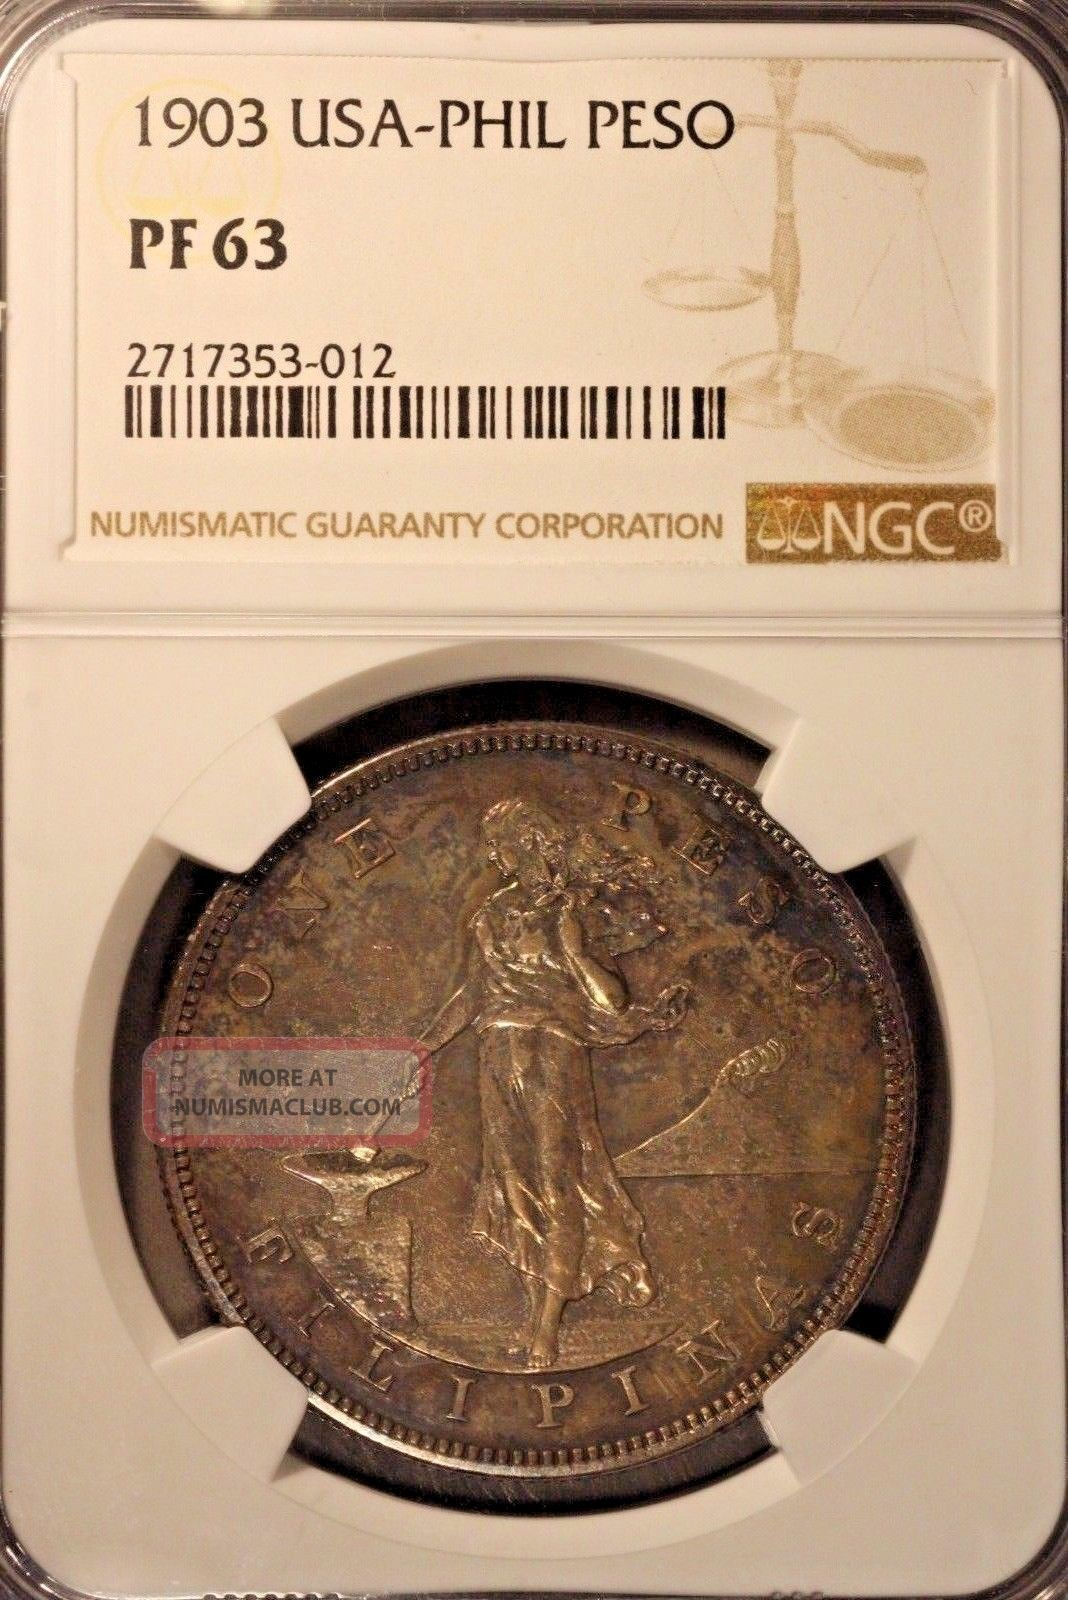 1903 Philippines Usa Silver Peso Proof,  Ngc Pf 63 Toned U.  S Philippines photo